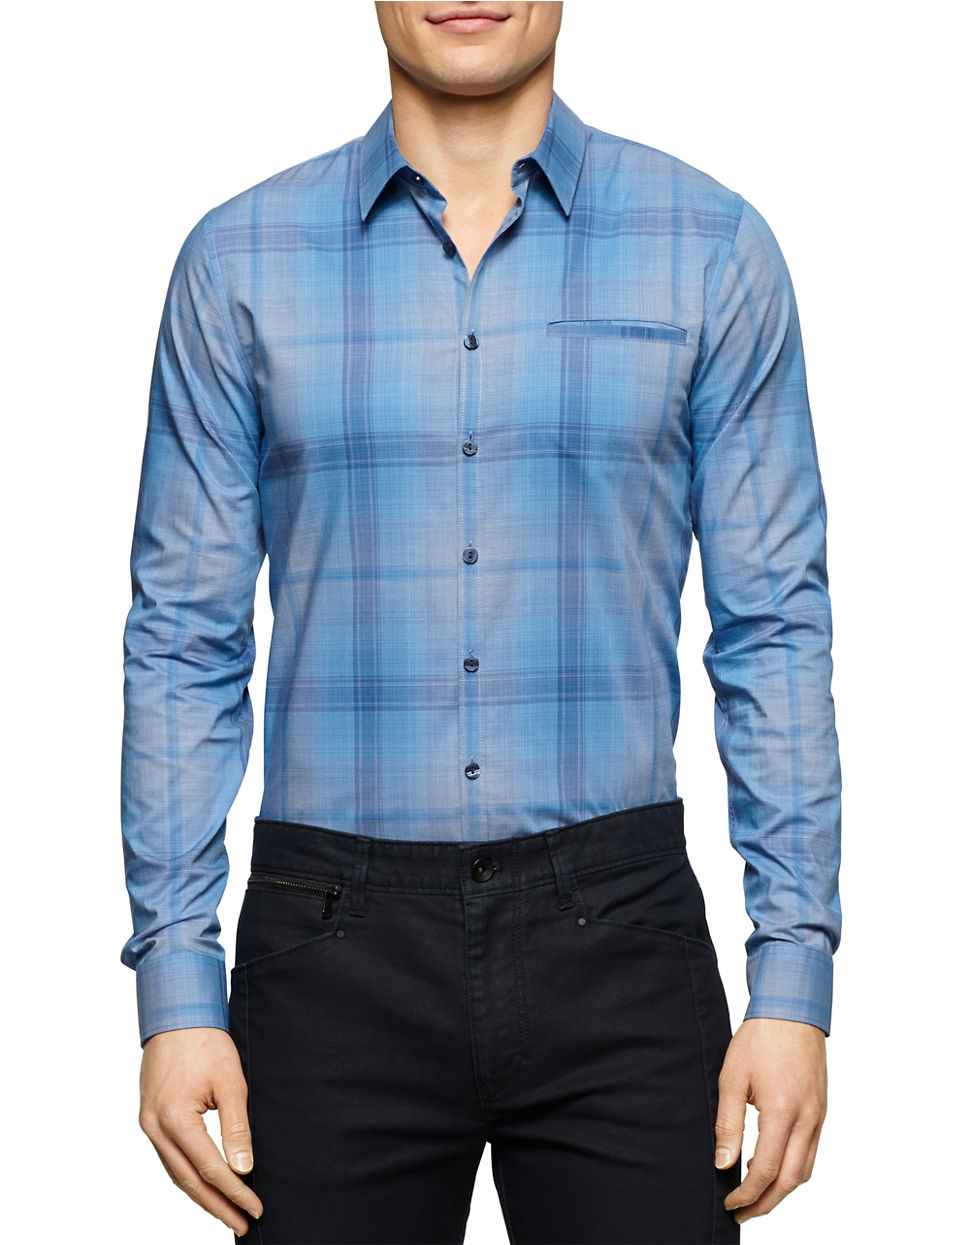 calvin klein plaid sportshirt in blue for men lyst. Black Bedroom Furniture Sets. Home Design Ideas